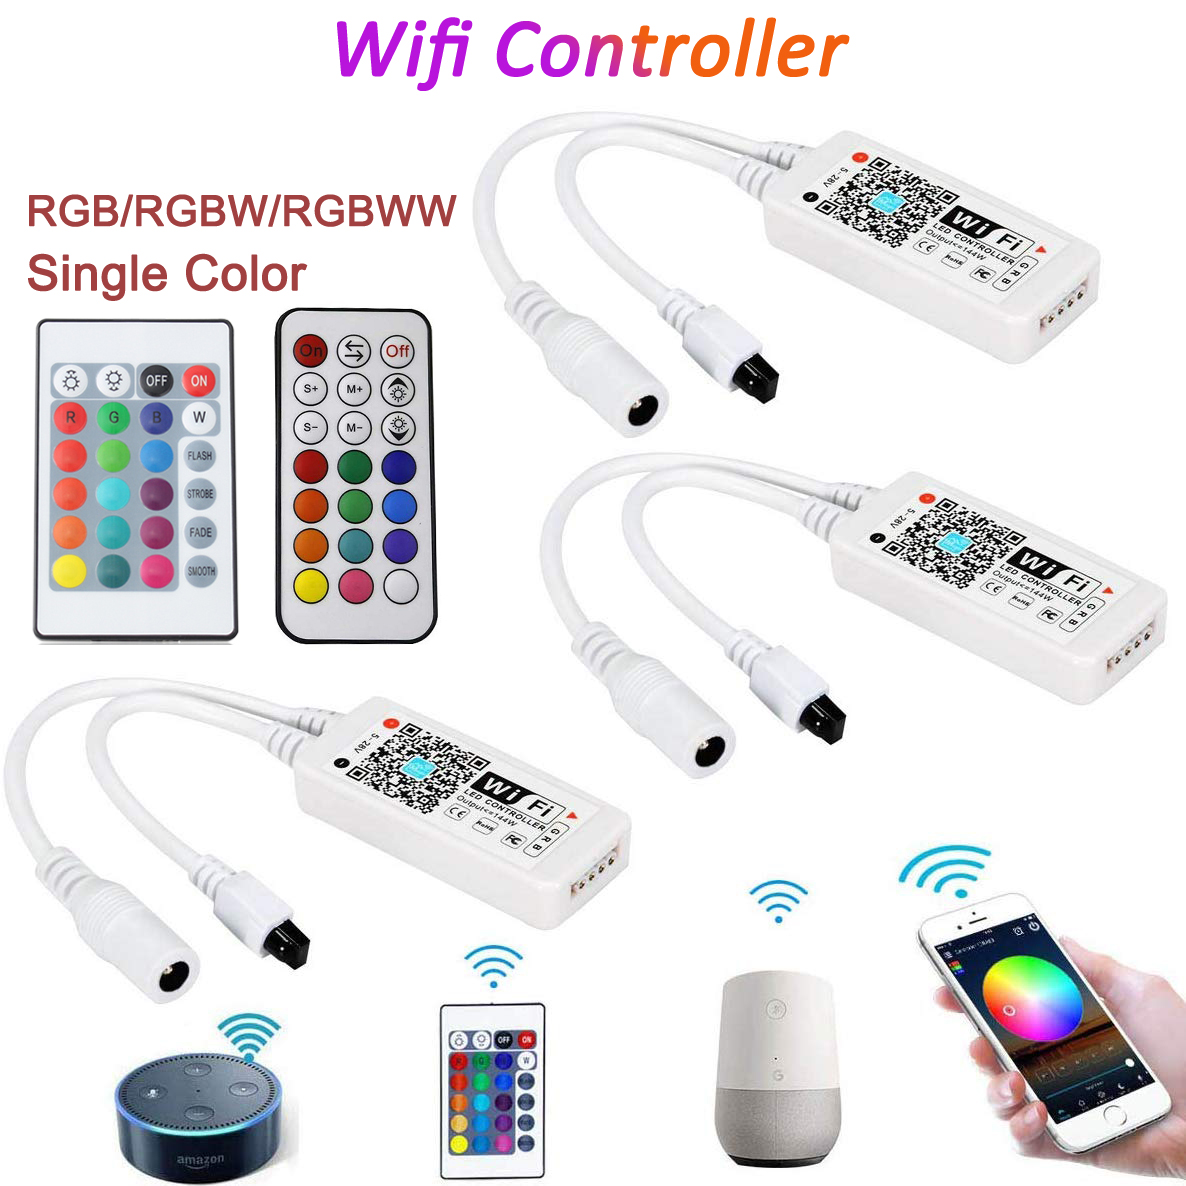 DC5V 12V 24V RGB Led Wifi Controller RGBW RGBWW Bluetooth WiFi LED Controller For 5050 2835 WS2811 WS2812B Led Strip Magic Home